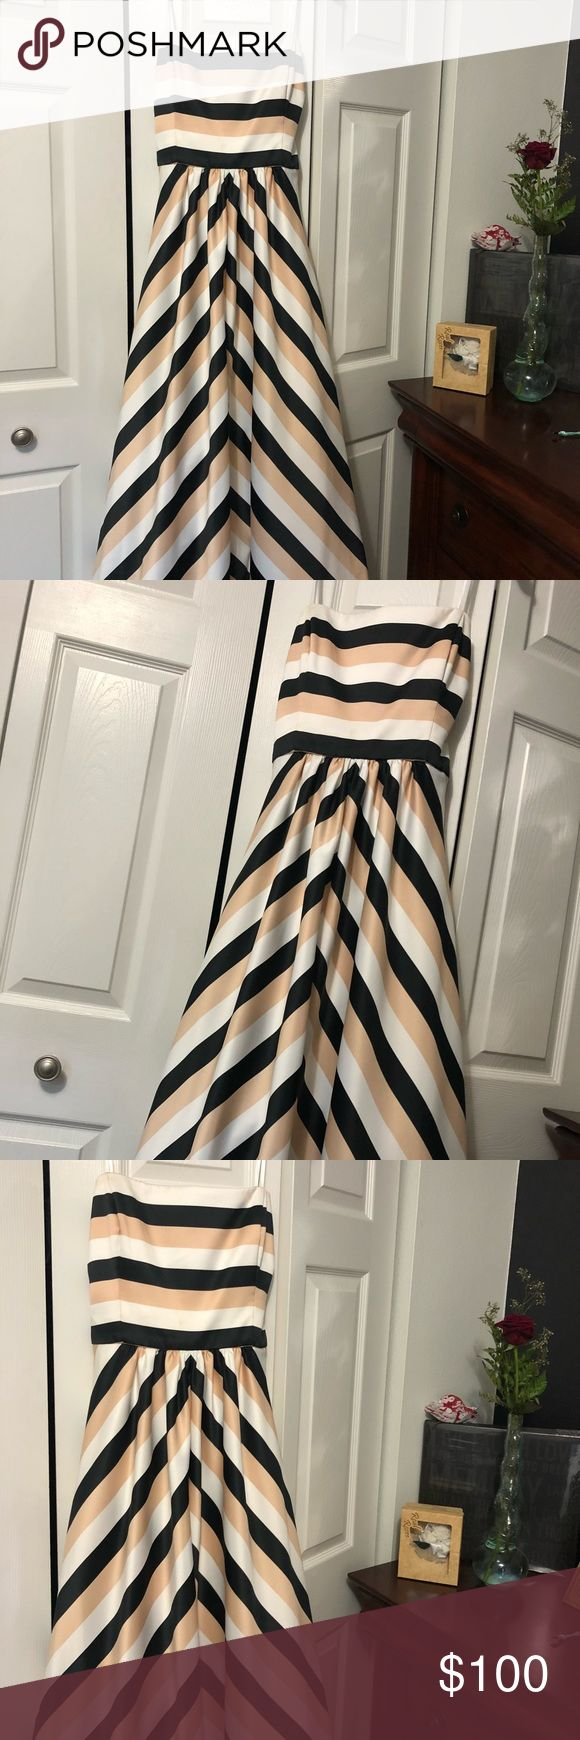 David's Bridal Prom Dress Gorgeous Striped Prom Dress, only worn once for my junior prom! size 18 navy blue white and cream colored stripes. I'm 5 ft 4 with heels the dress does not touch the ground David's Bridal Dresses Prom